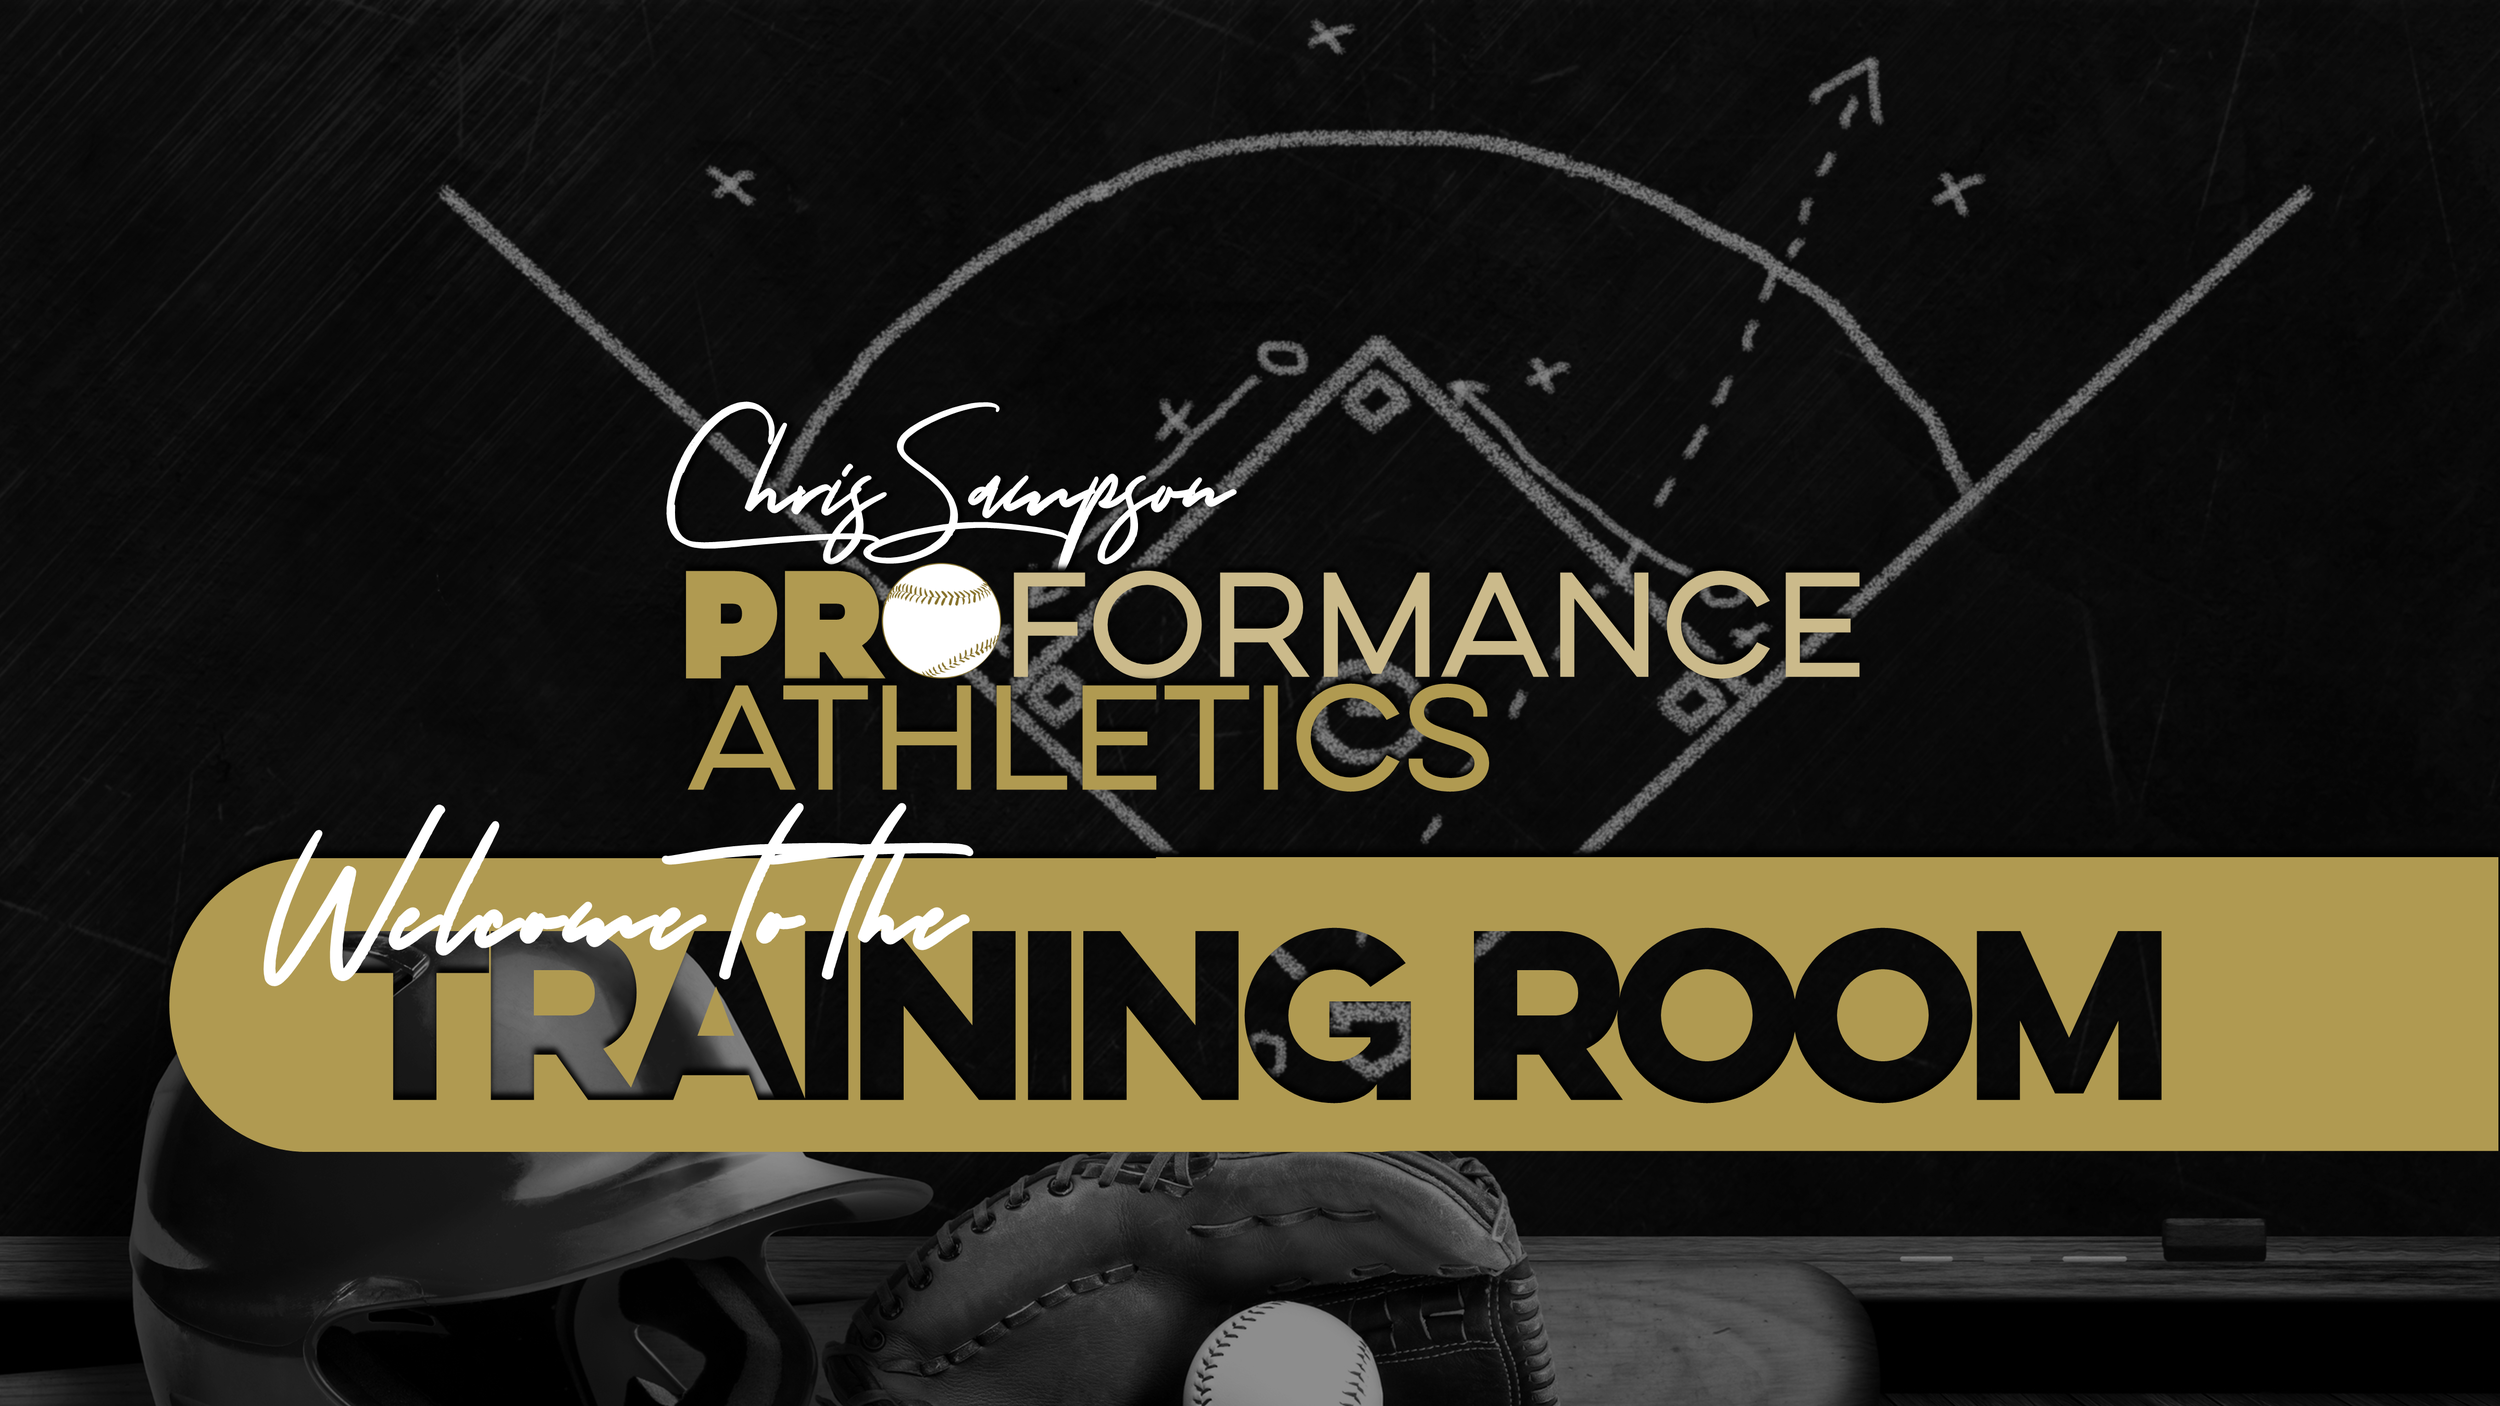 Get Coaching 365 Days a year - In the TRAINING ROOM FOR ONLY $9 PER MONTHThe TRAINING ROOM IS FREE FOR 12-MONTHS WITH OUR 6-WEEK THROWING PROGRAM